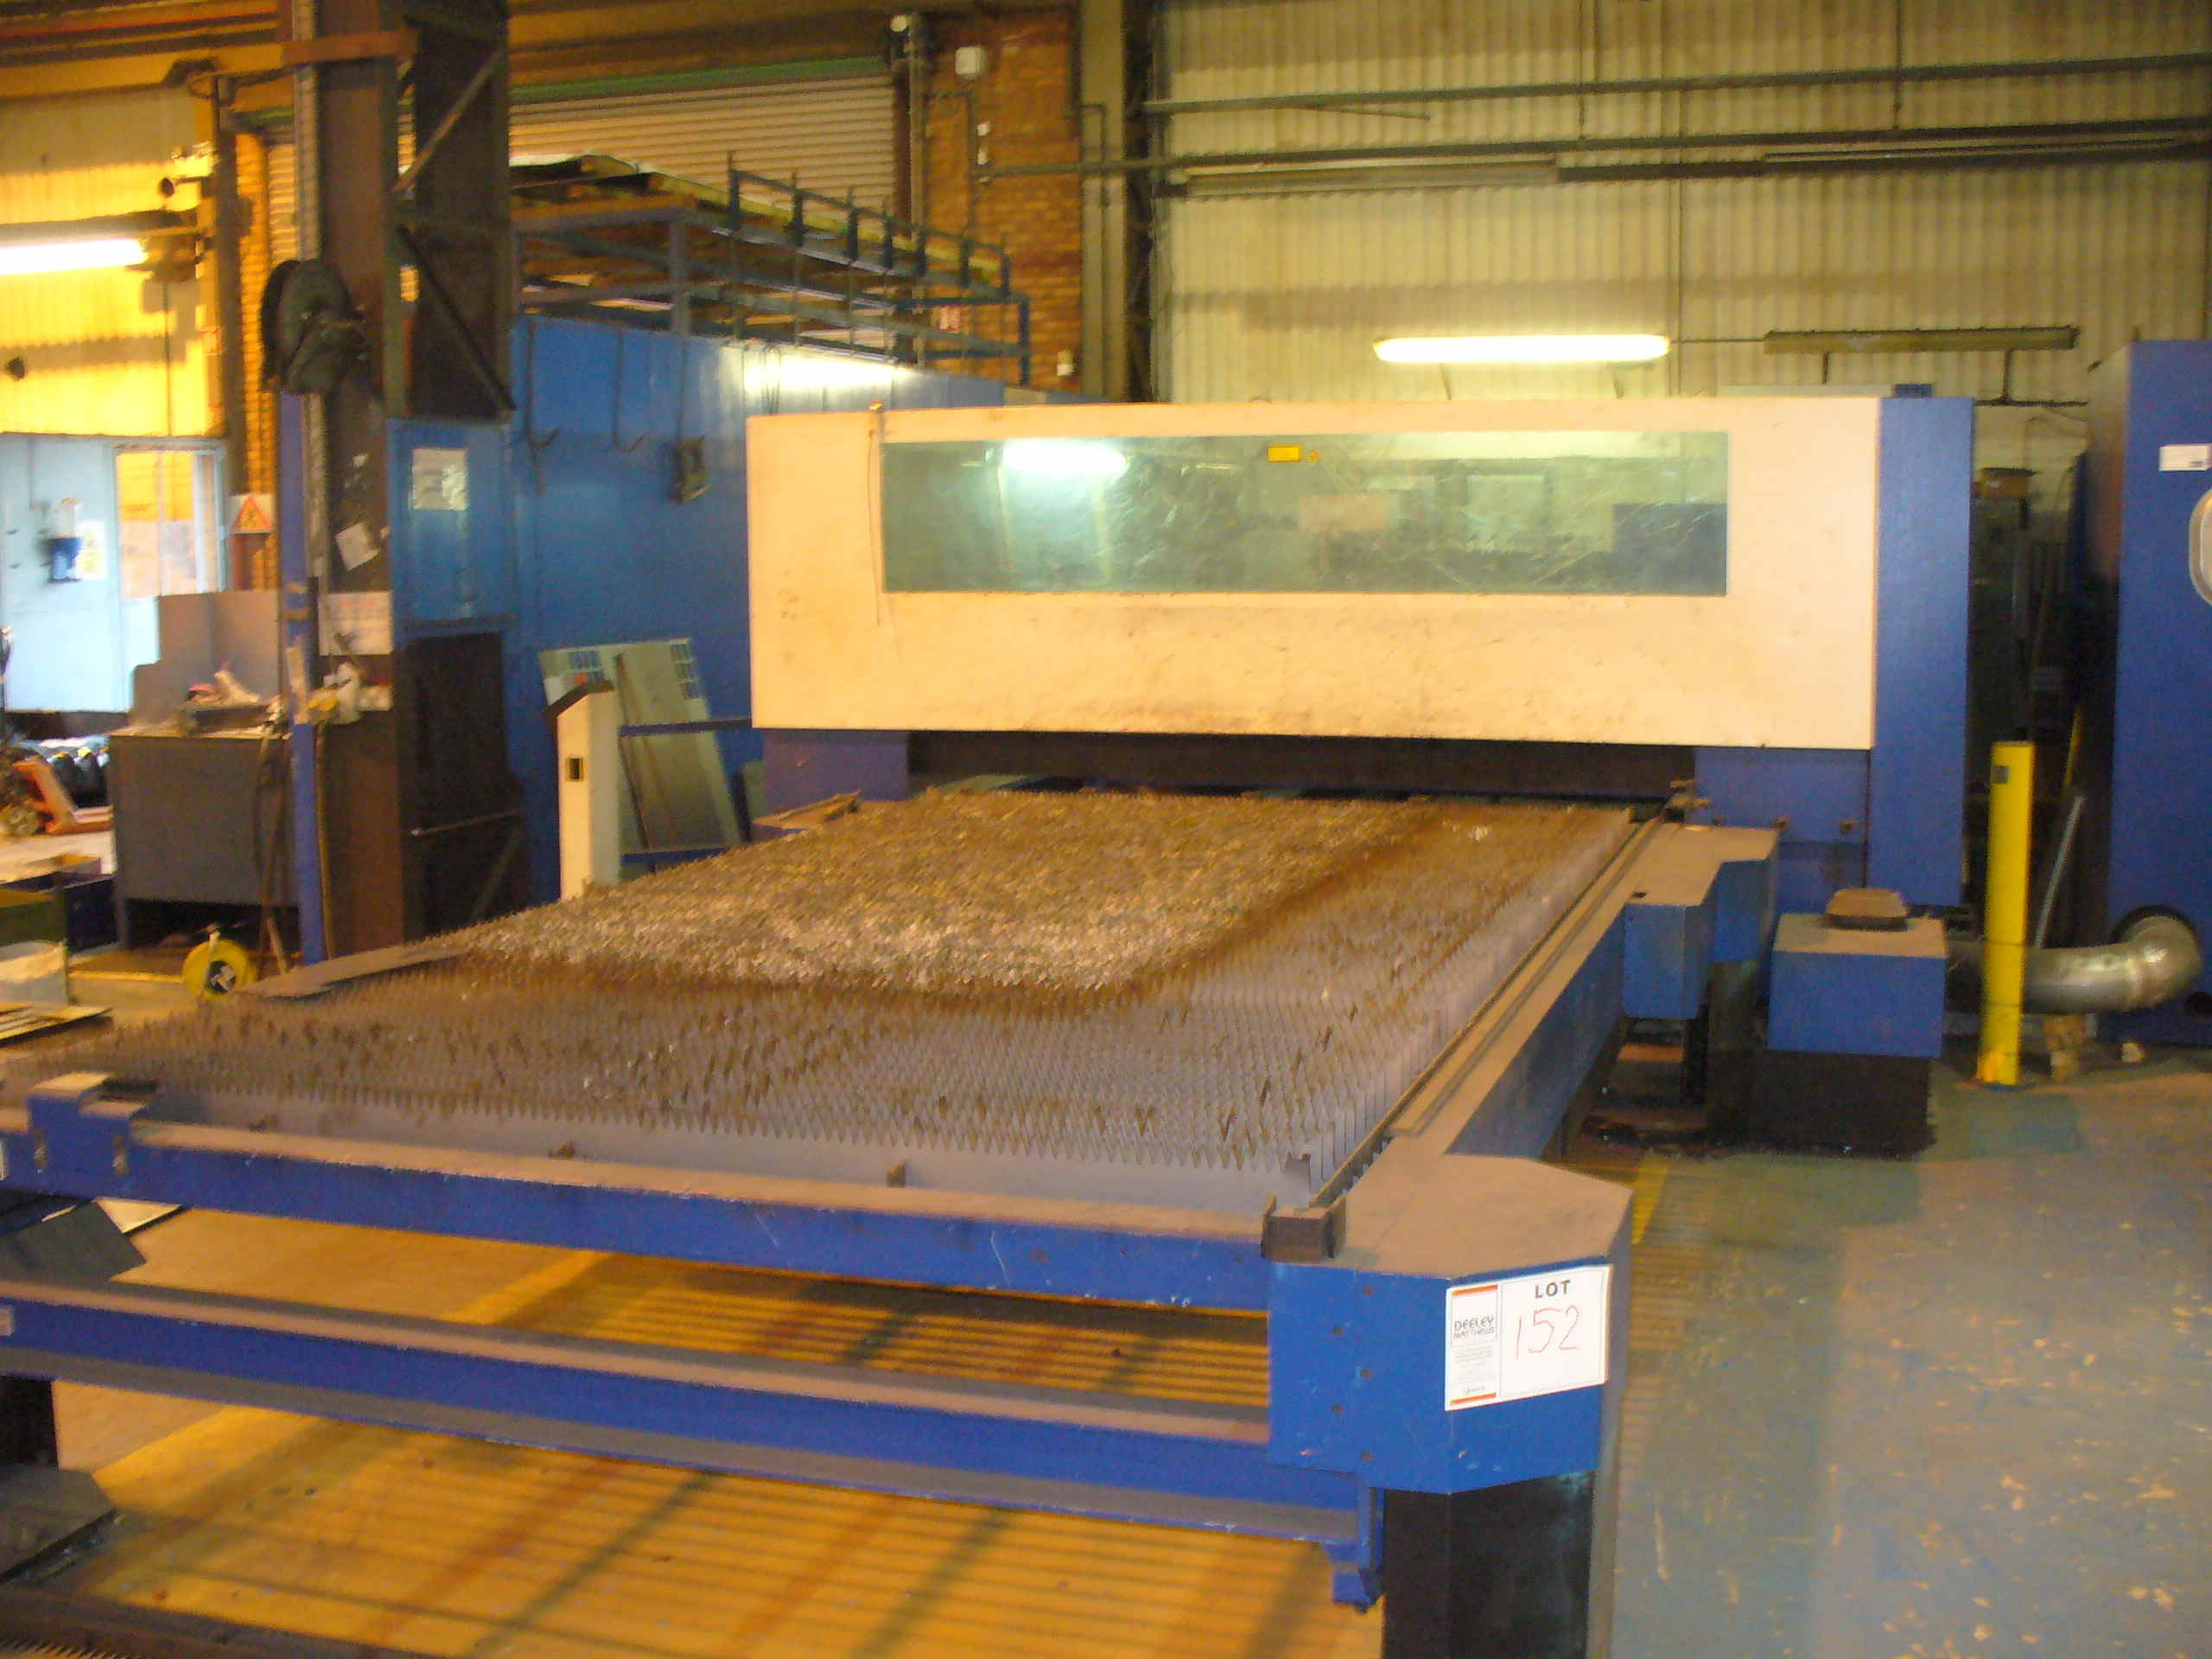 Lot 452 - 2005 Trumpf Trumatic L4050 4m x 2.0m - 6kw LASER PROFILE MACHINE